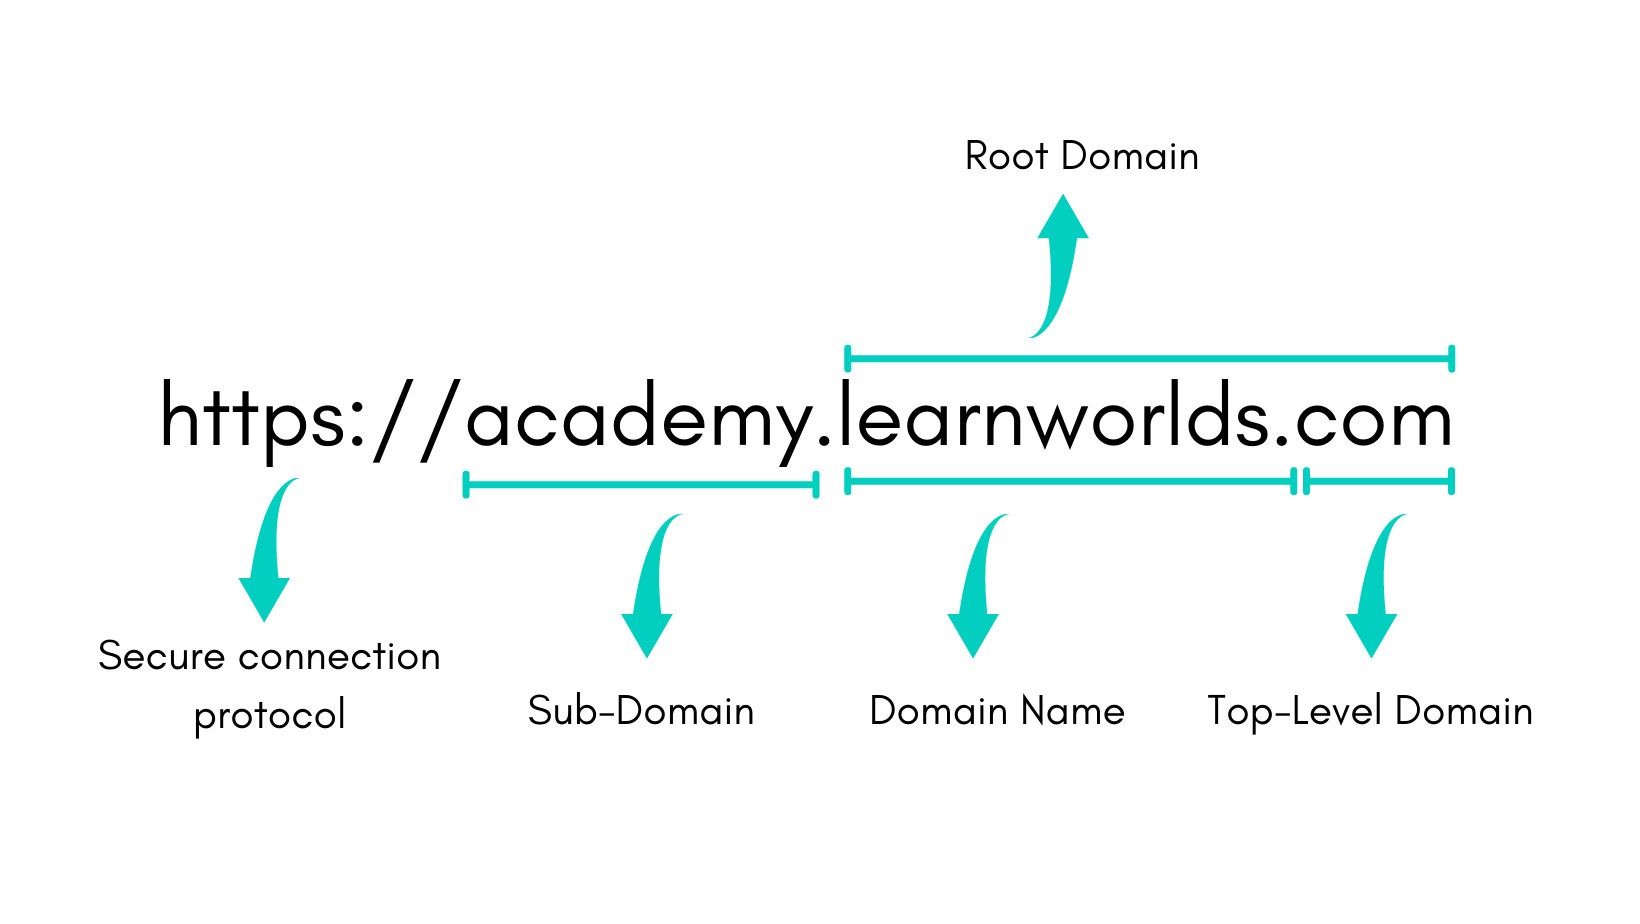 Example of a subdomain under a domain for online courses and schools/academies